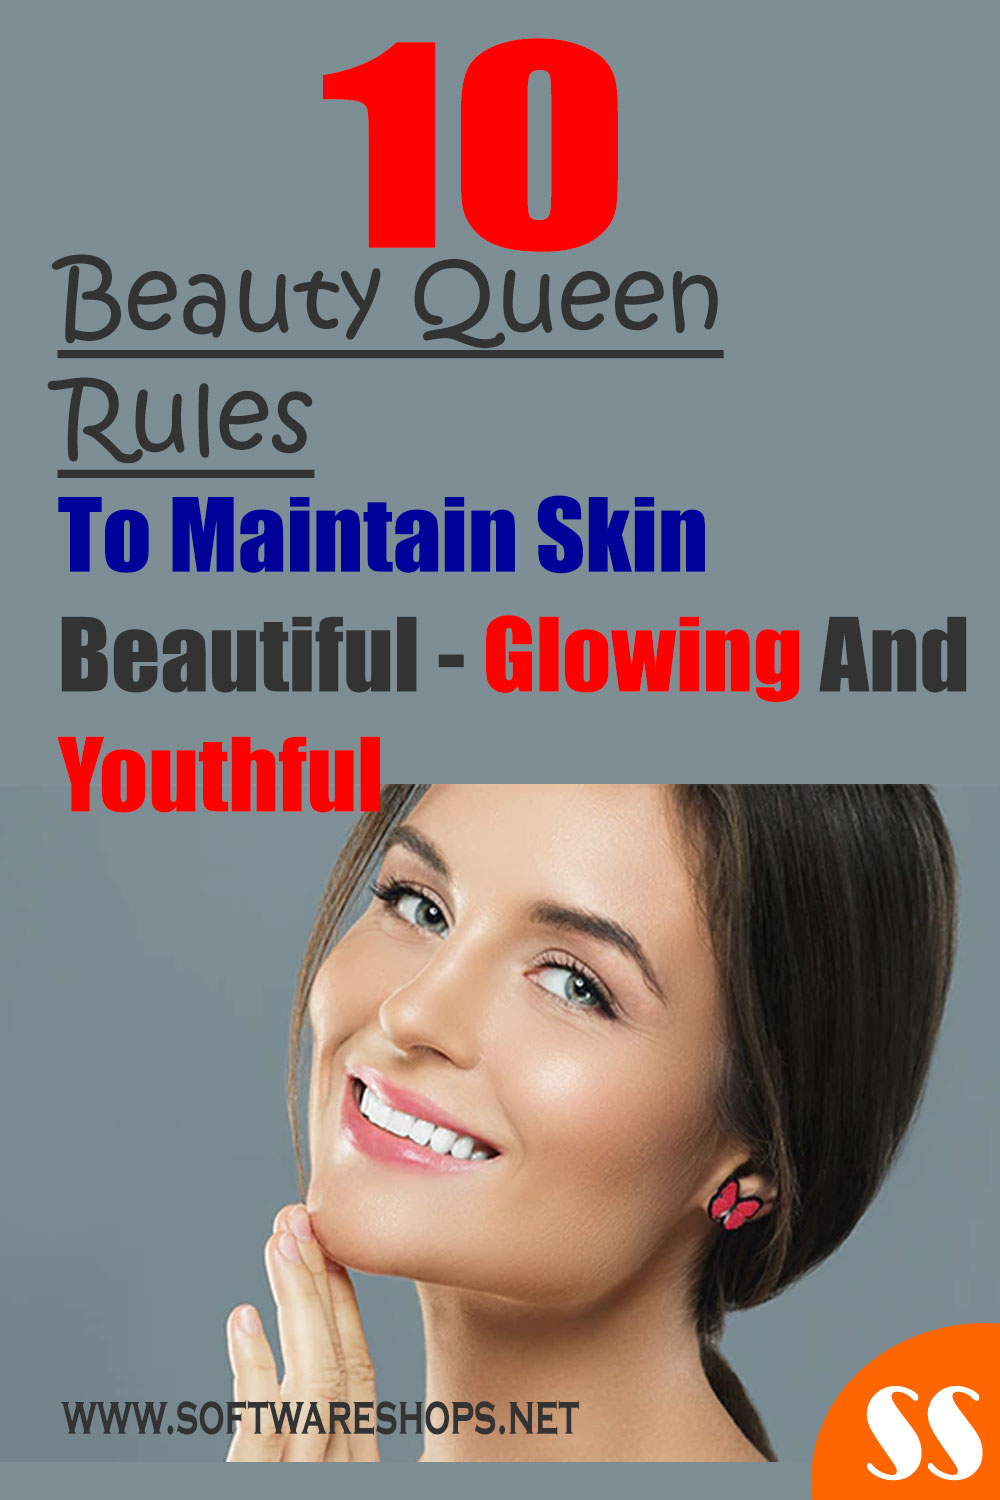 10 Beauty Queen Rules To Maintain Skin Beautiful